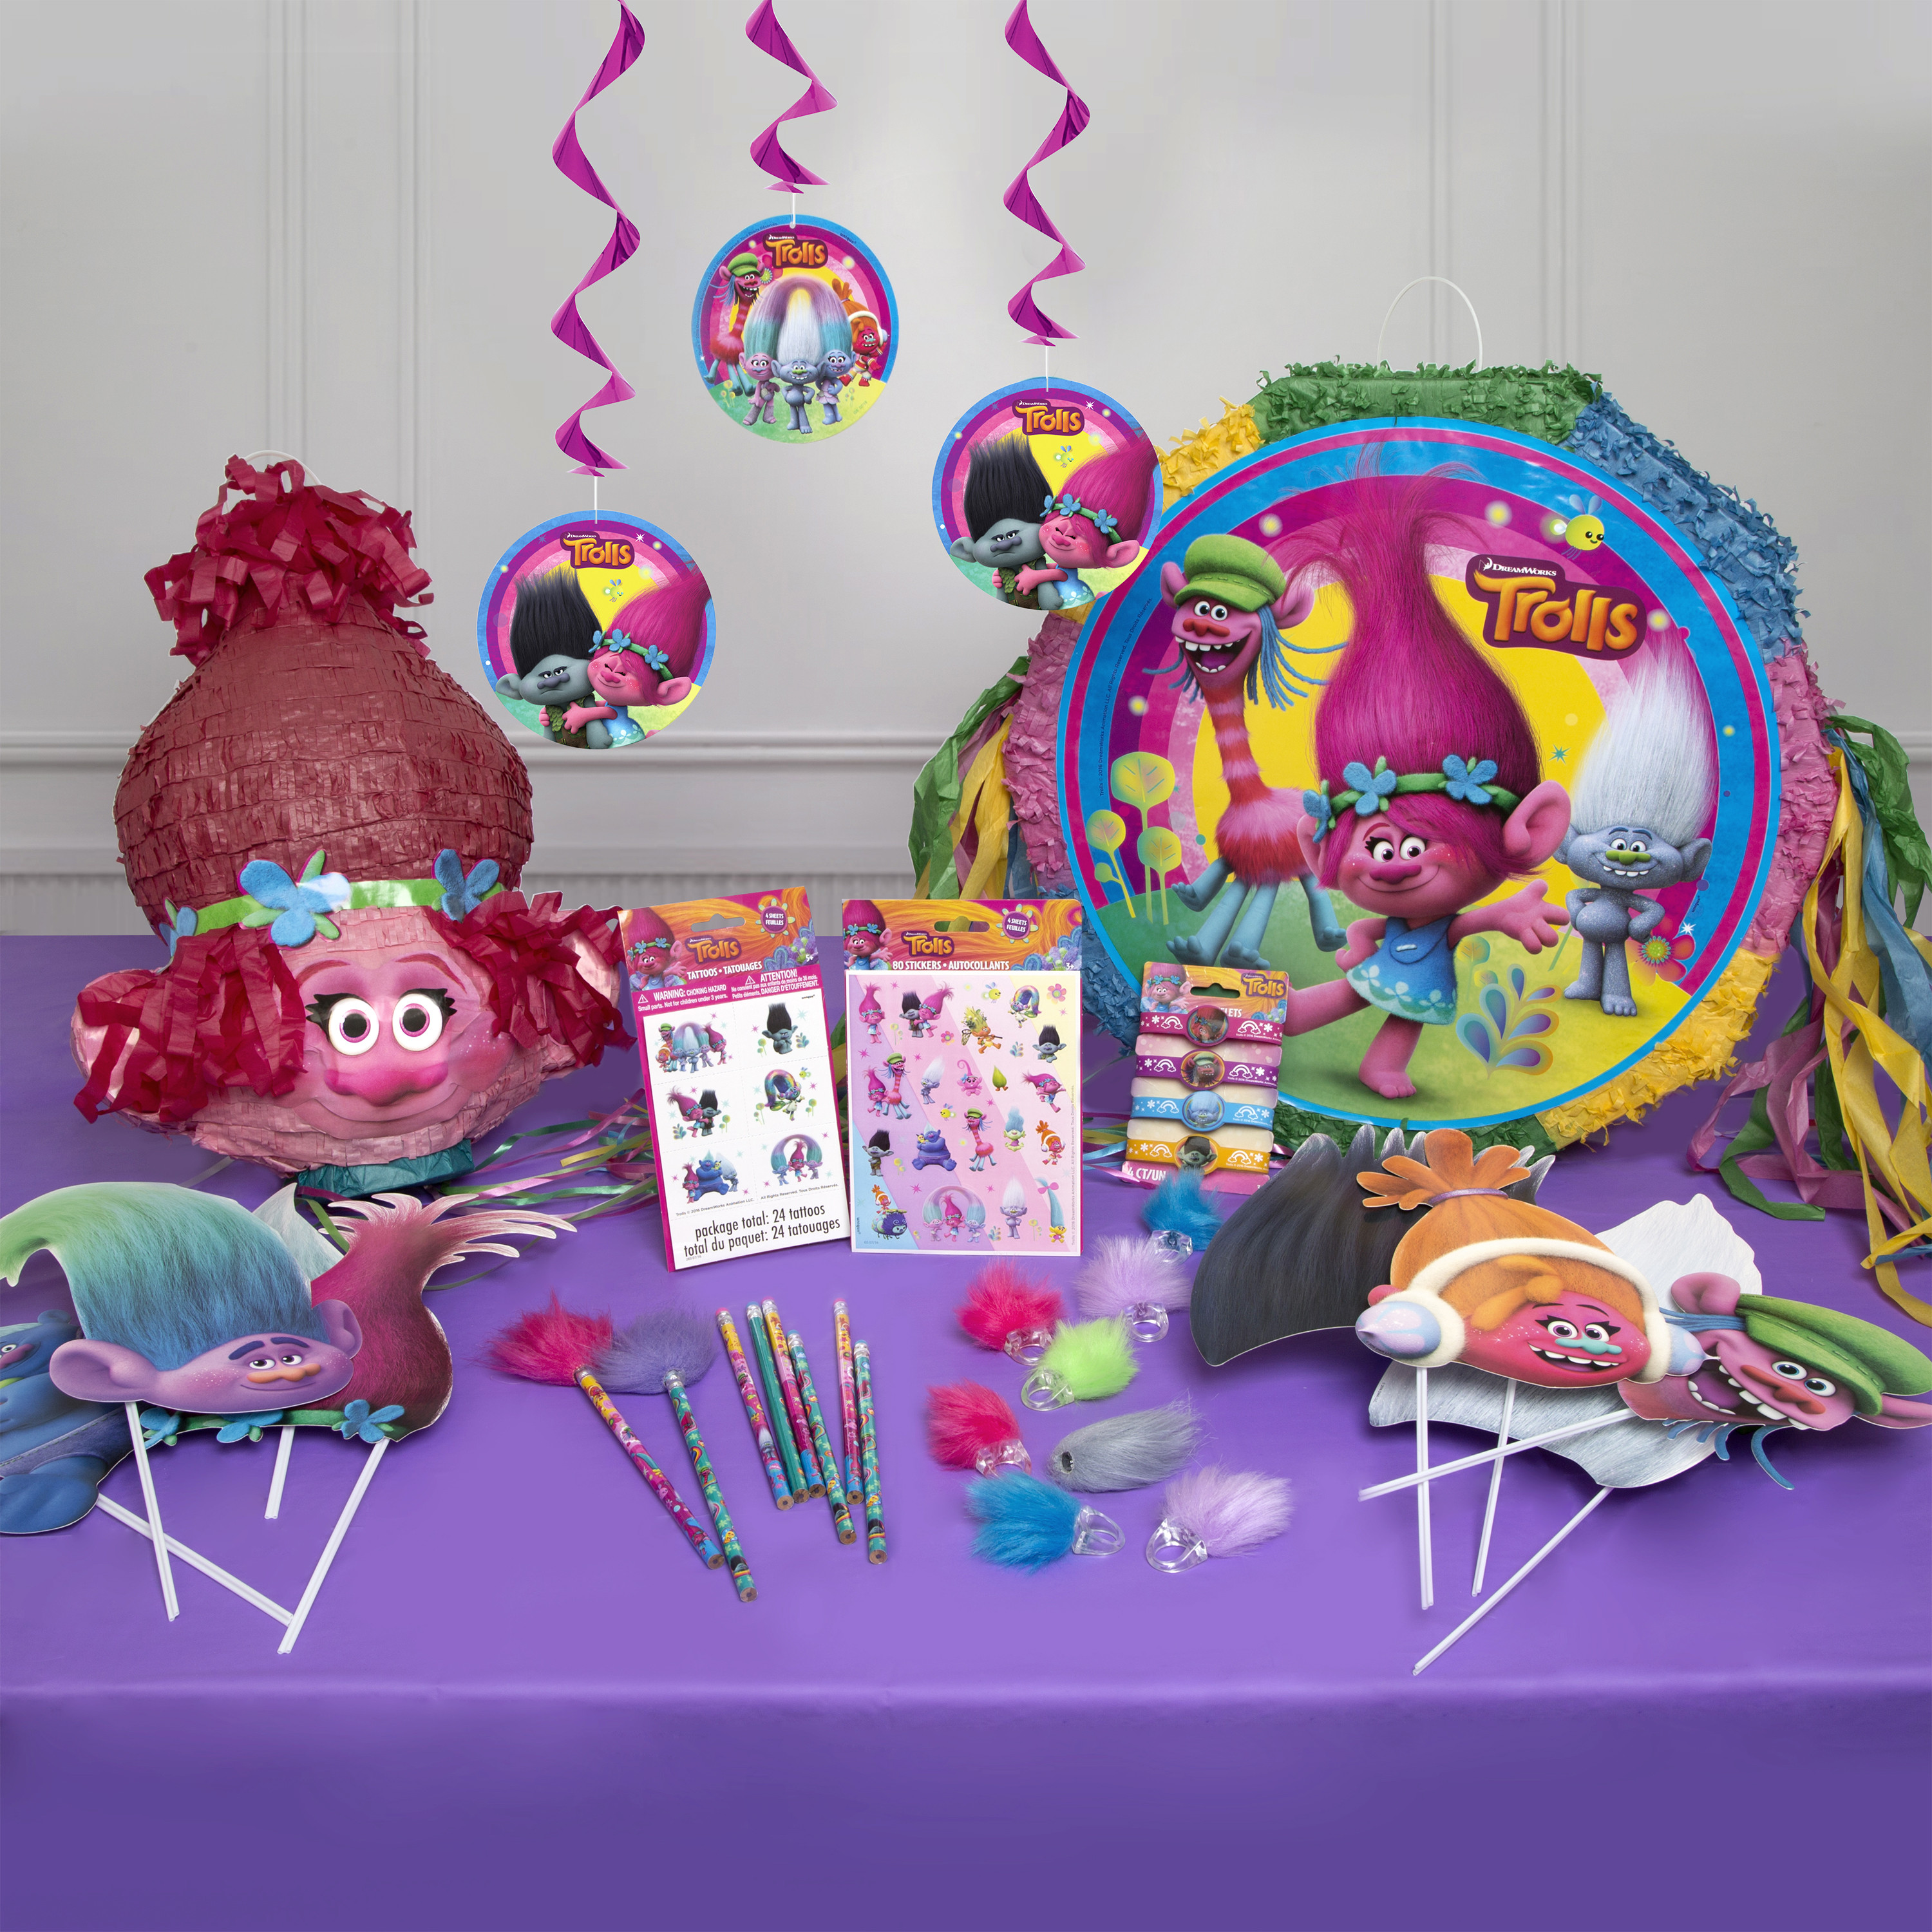 Best ideas about Walmart Birthday Decorations . Save or Pin Trolls Party Supplies Walmart Now.